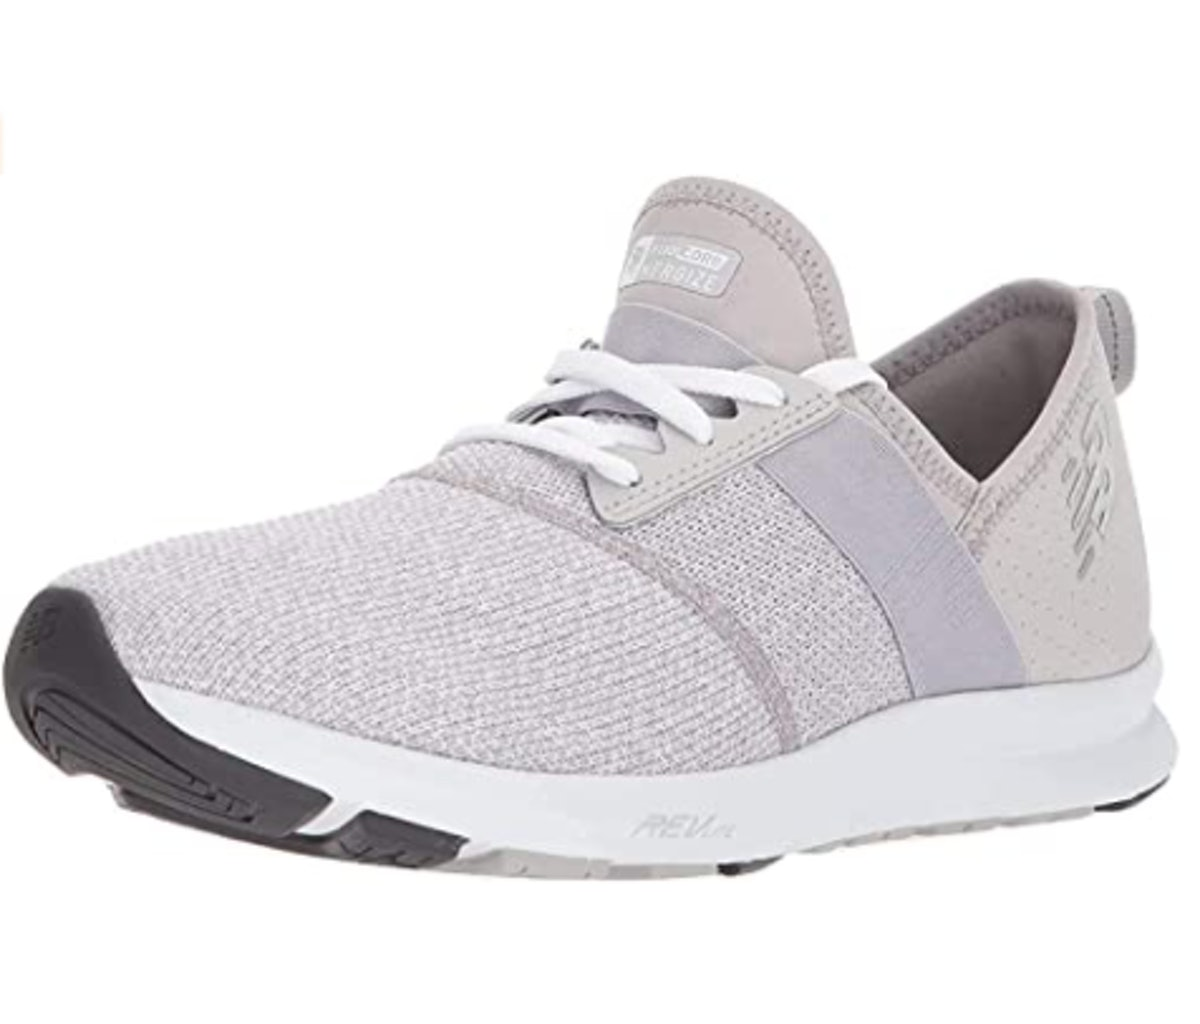 New Balance FuelCore Nergize V1 Sneaker